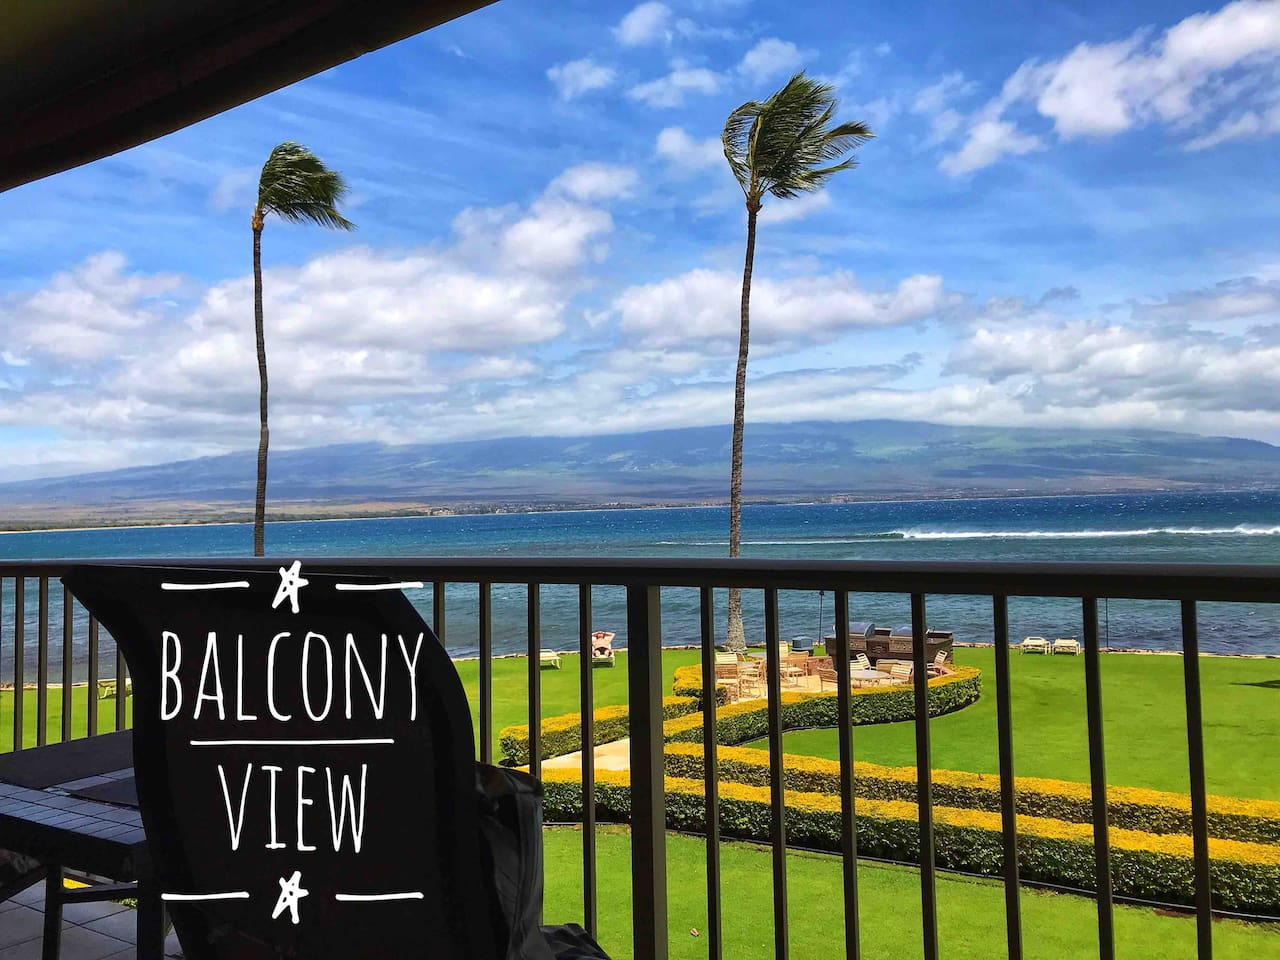 Balcony View - Panoramic views of South Maui, Haleakala, & West Maui Mountains. Fantastic spot to watch the famous Maui sunrise, sunset, and whales breaching during whale season!